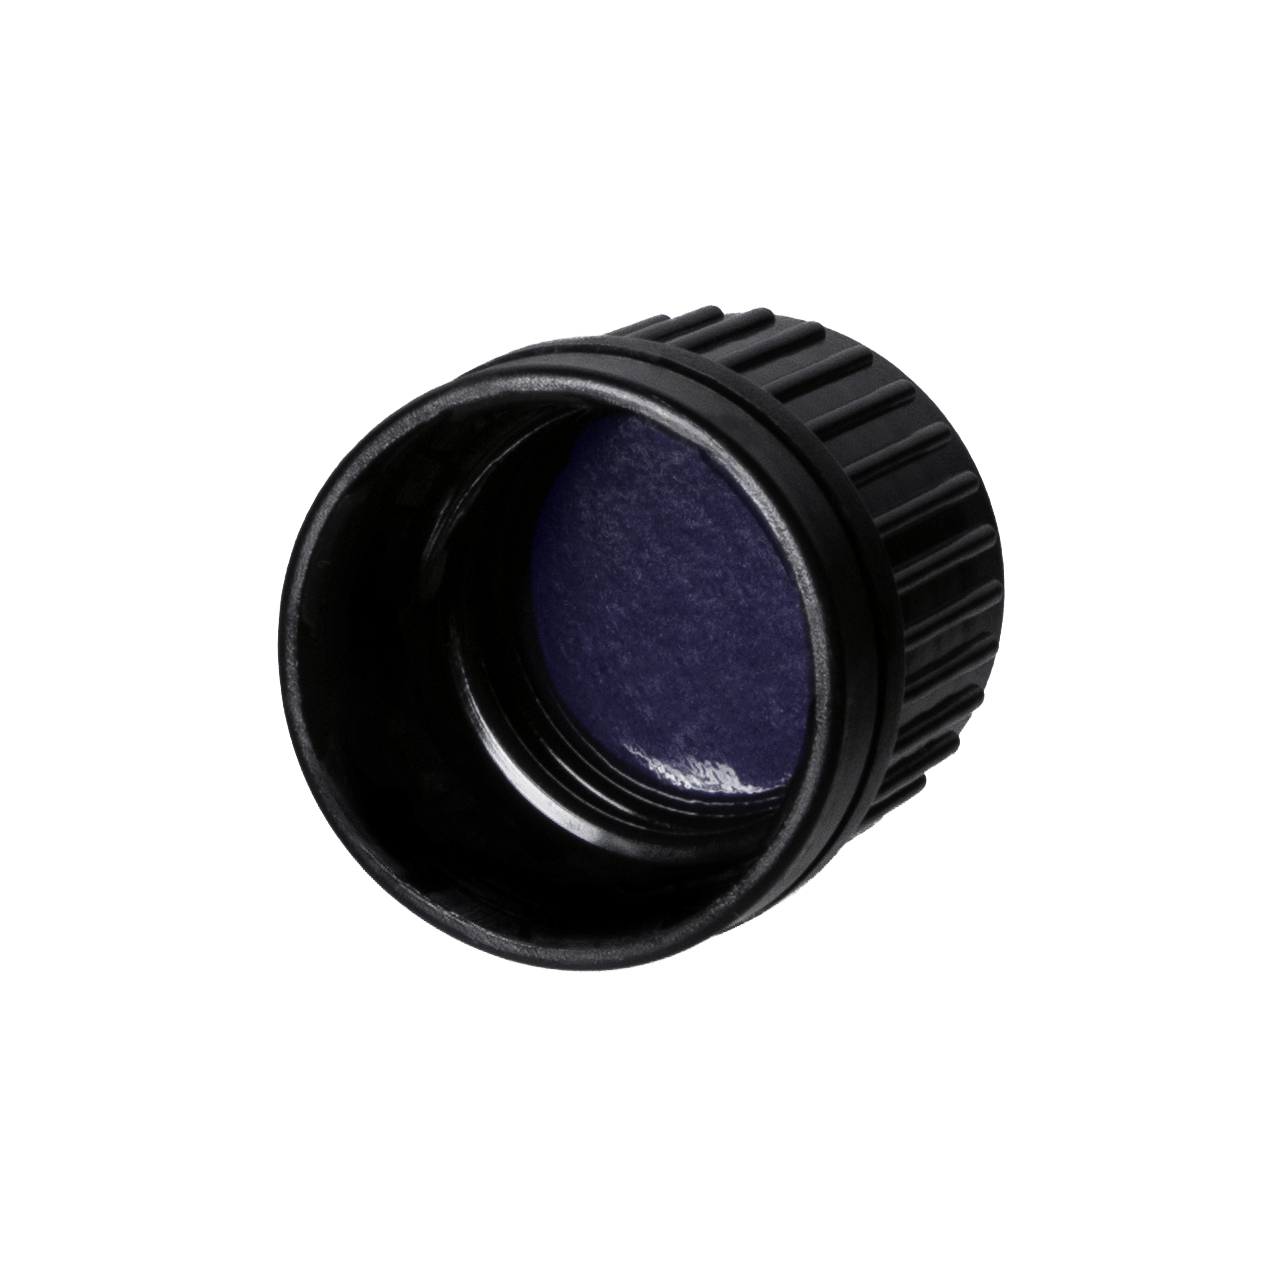 Screw cap series II, DIN18, tamper-evident, PP, black, ribbed with violet Phan inlay (for Orion 5-100 ml)